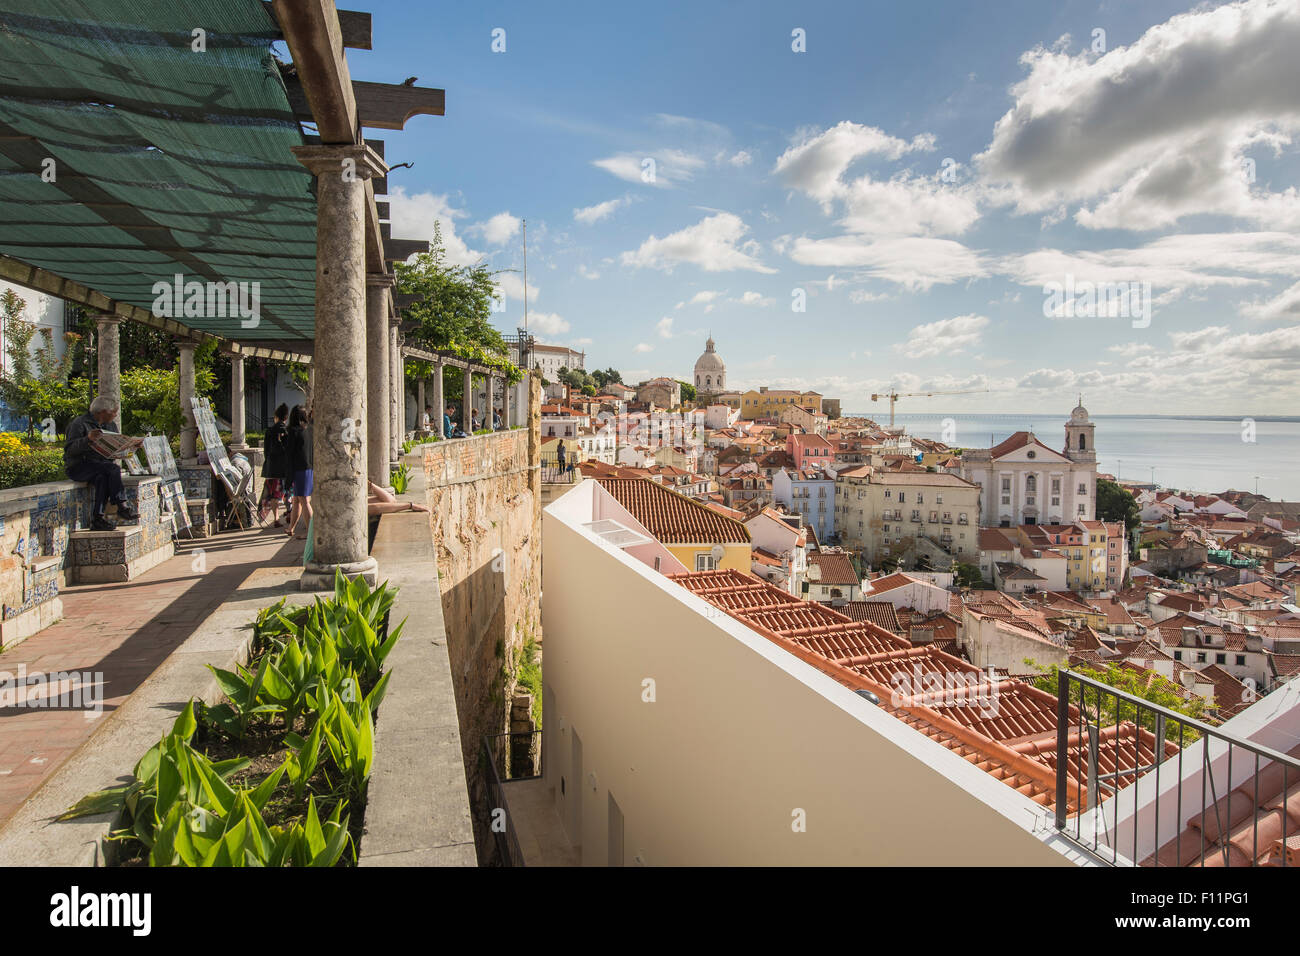 Alfama quarter seen from the viewpoint - Stock Image